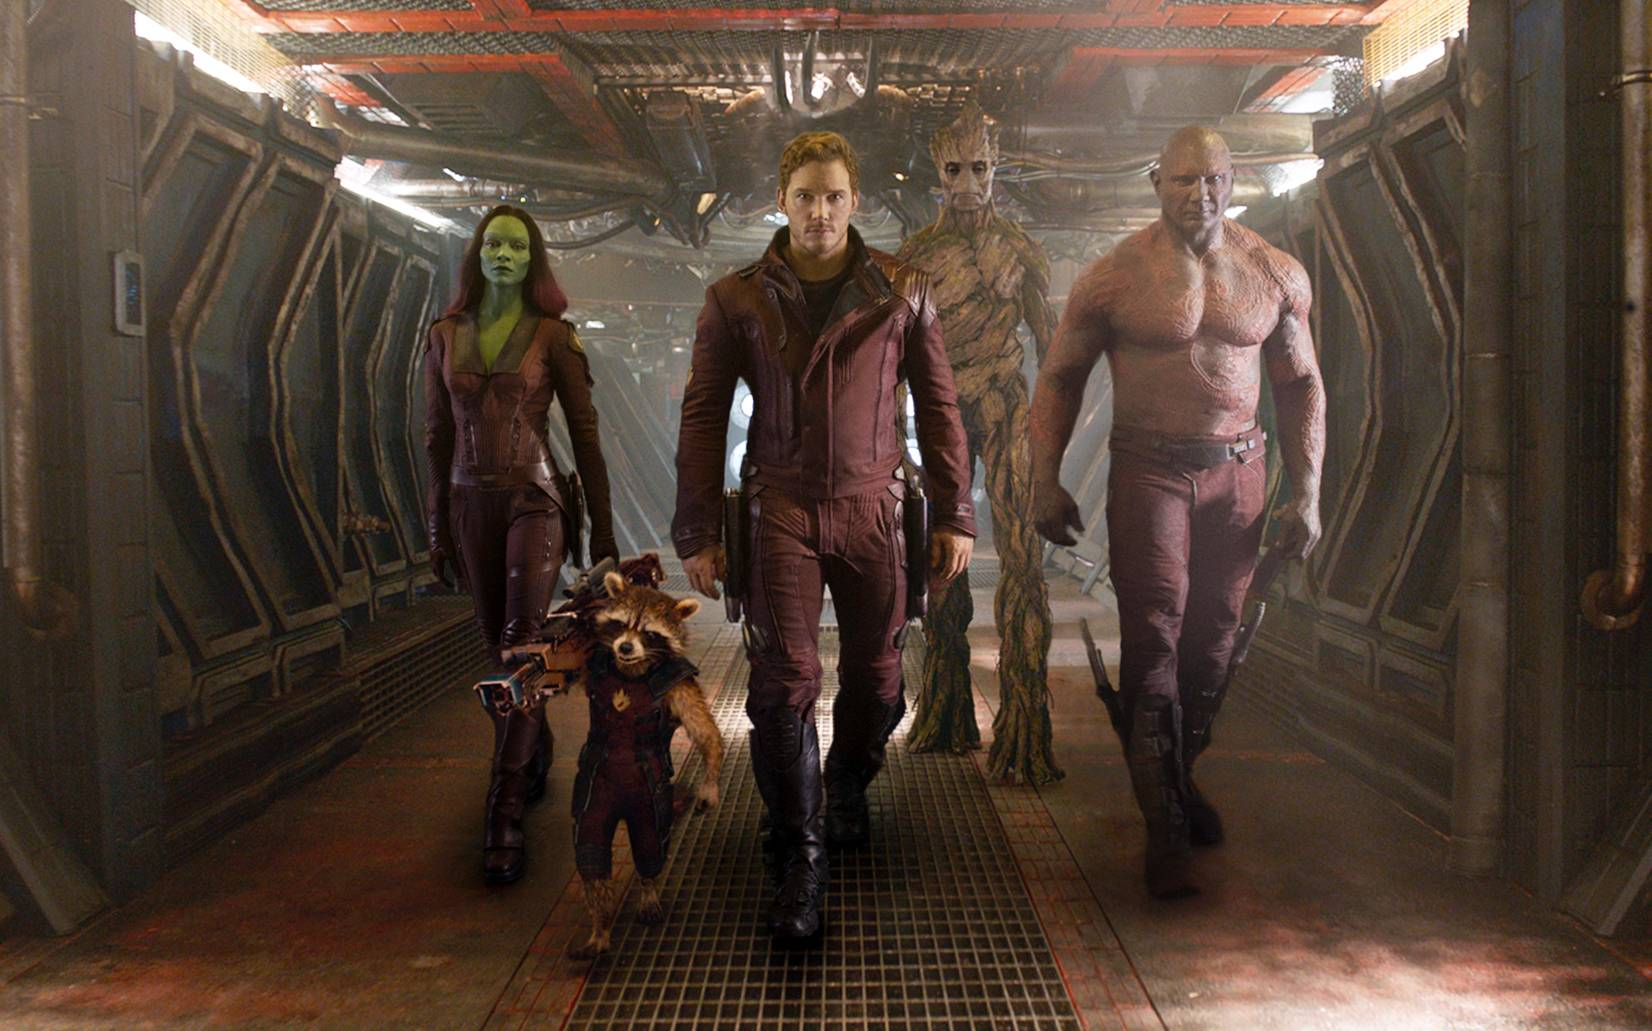 "From left, Zoe Saldana, the character Rocket Racoon, voiced by Bladley Cooper, Chris Pratt, the character Groot, voiced by Vin Diesel and Dave Bautista in a scene from ""Guardians of the Galaxy,"" which brought in another $41.5 million to raise its worldwide haul to $313.2 million."